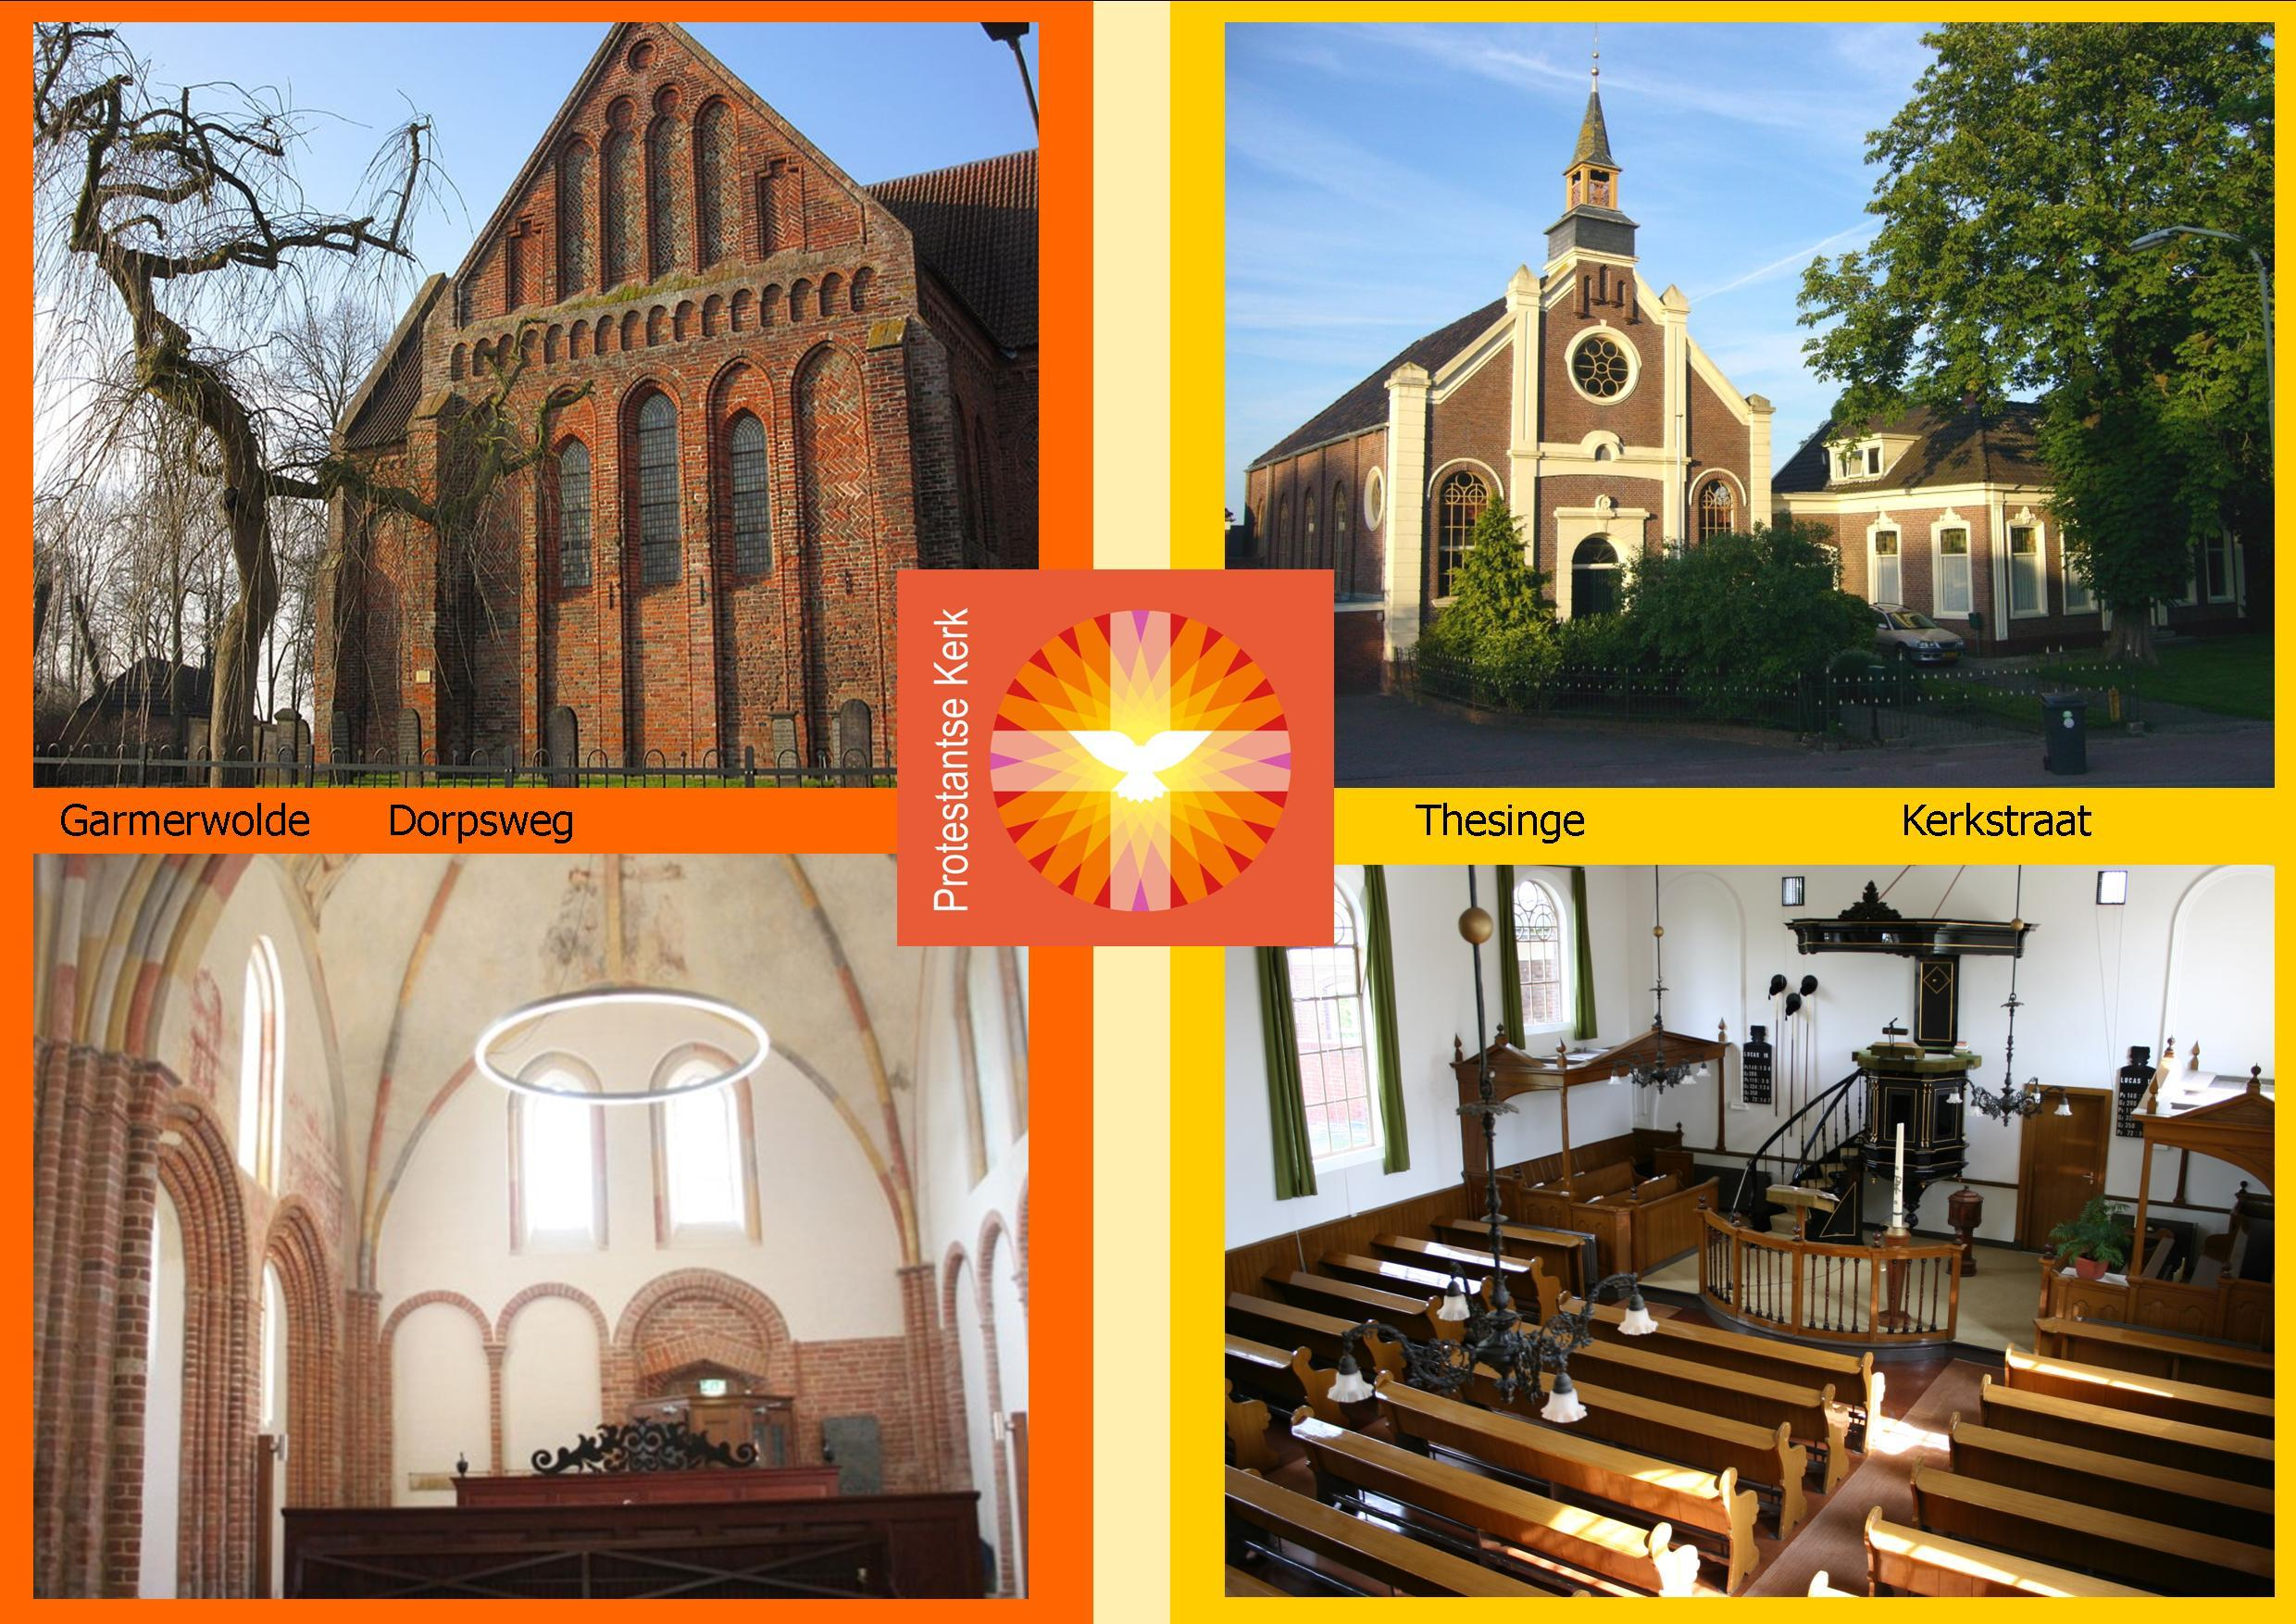 http://www.thesinge.com/pkn/files/kerk.jpg